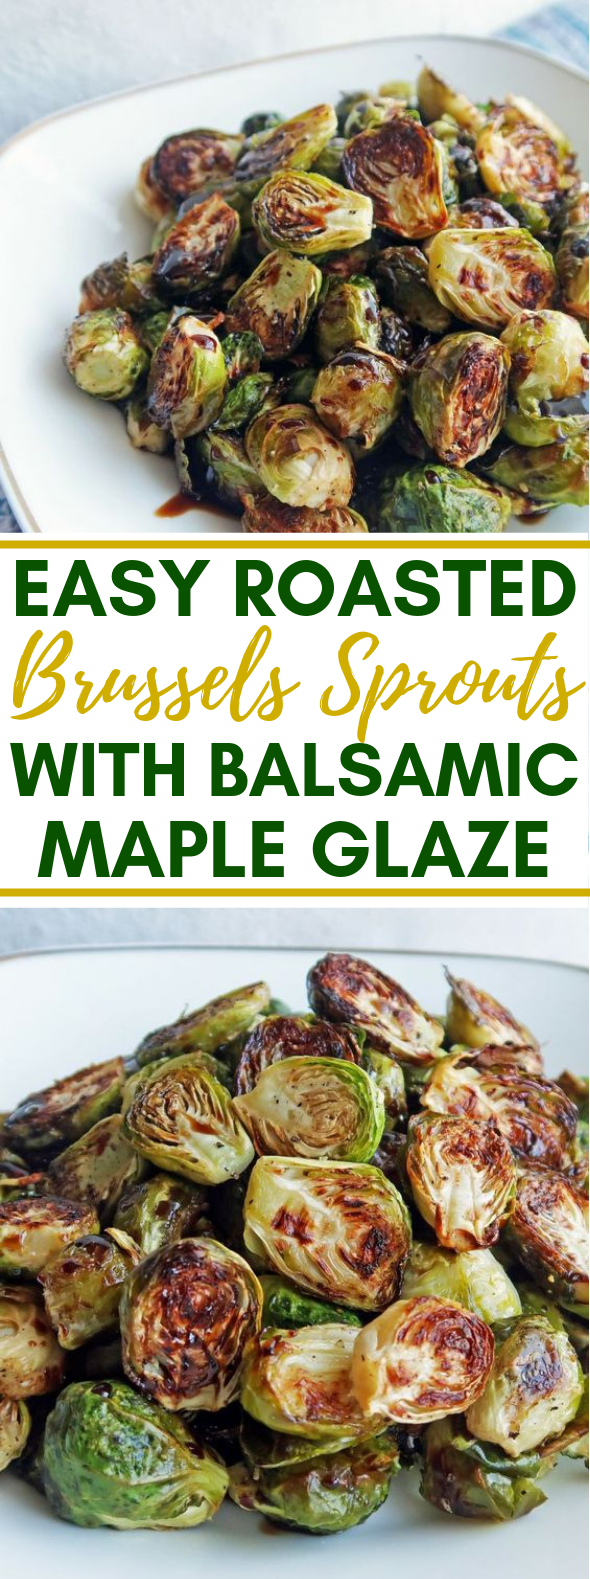 ROASTED BRUSSELS SPROUTS WITH BALSAMIC-MAPLE GLAZE #vegetarian #delicious